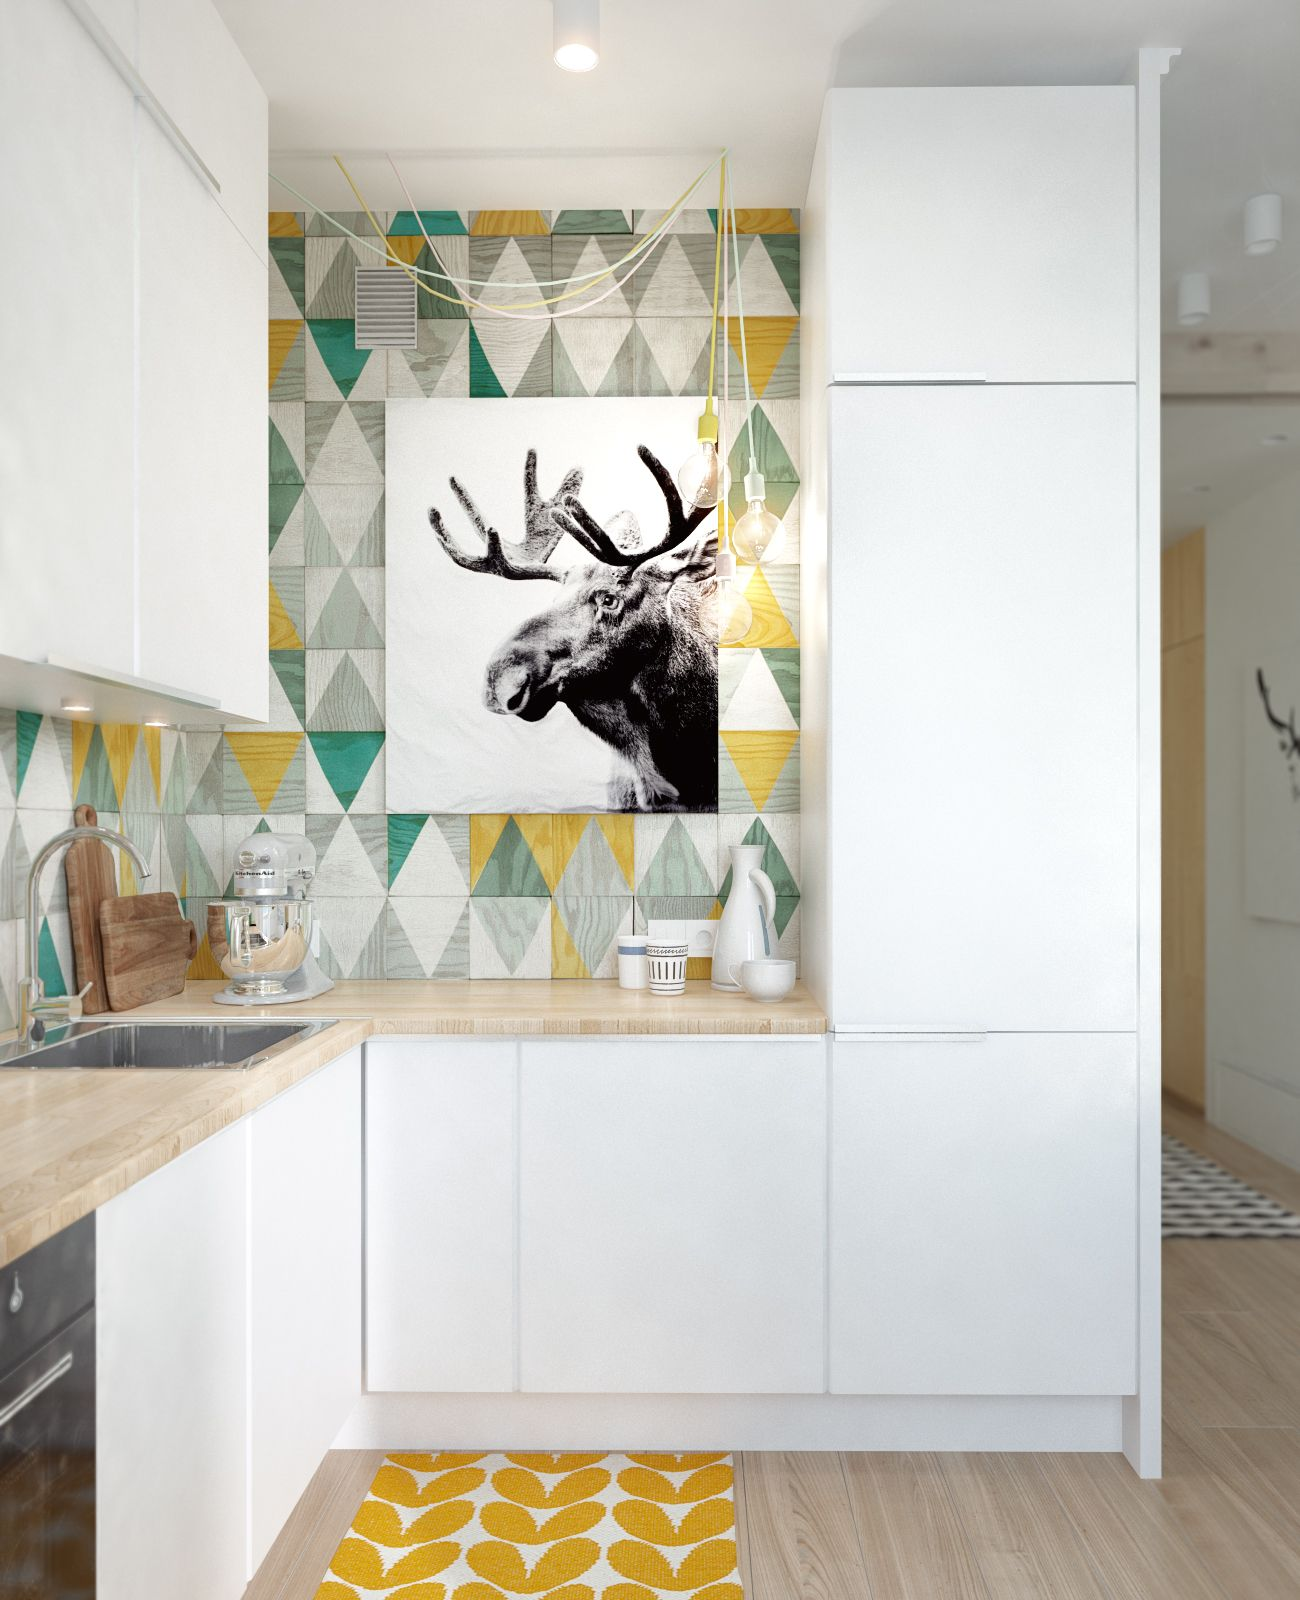 7-home-kitchen-design-with-wall-moose-picture-design-with-wooden-floor-and-multicolors-backspalsh-and-corner-kitchen-design